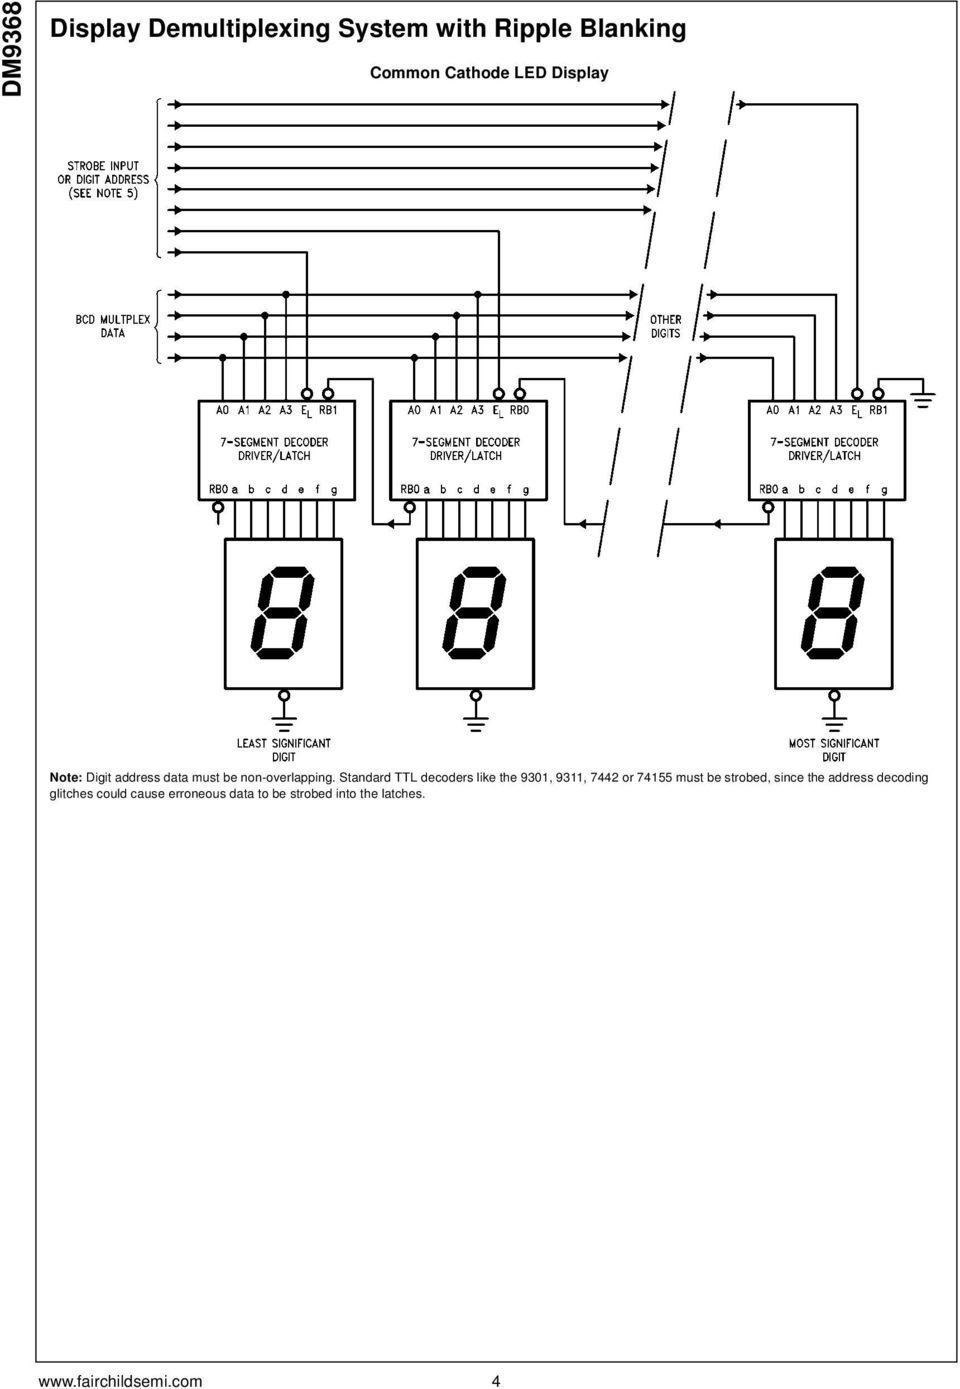 Dm Segment Decoder Driver Latch With Constant Current Source Outputs Logic Diagram For Bcd To 7 Standard Ttl Decoders Like The 9301 9311 7442 Or 74155 Must Be Strobed